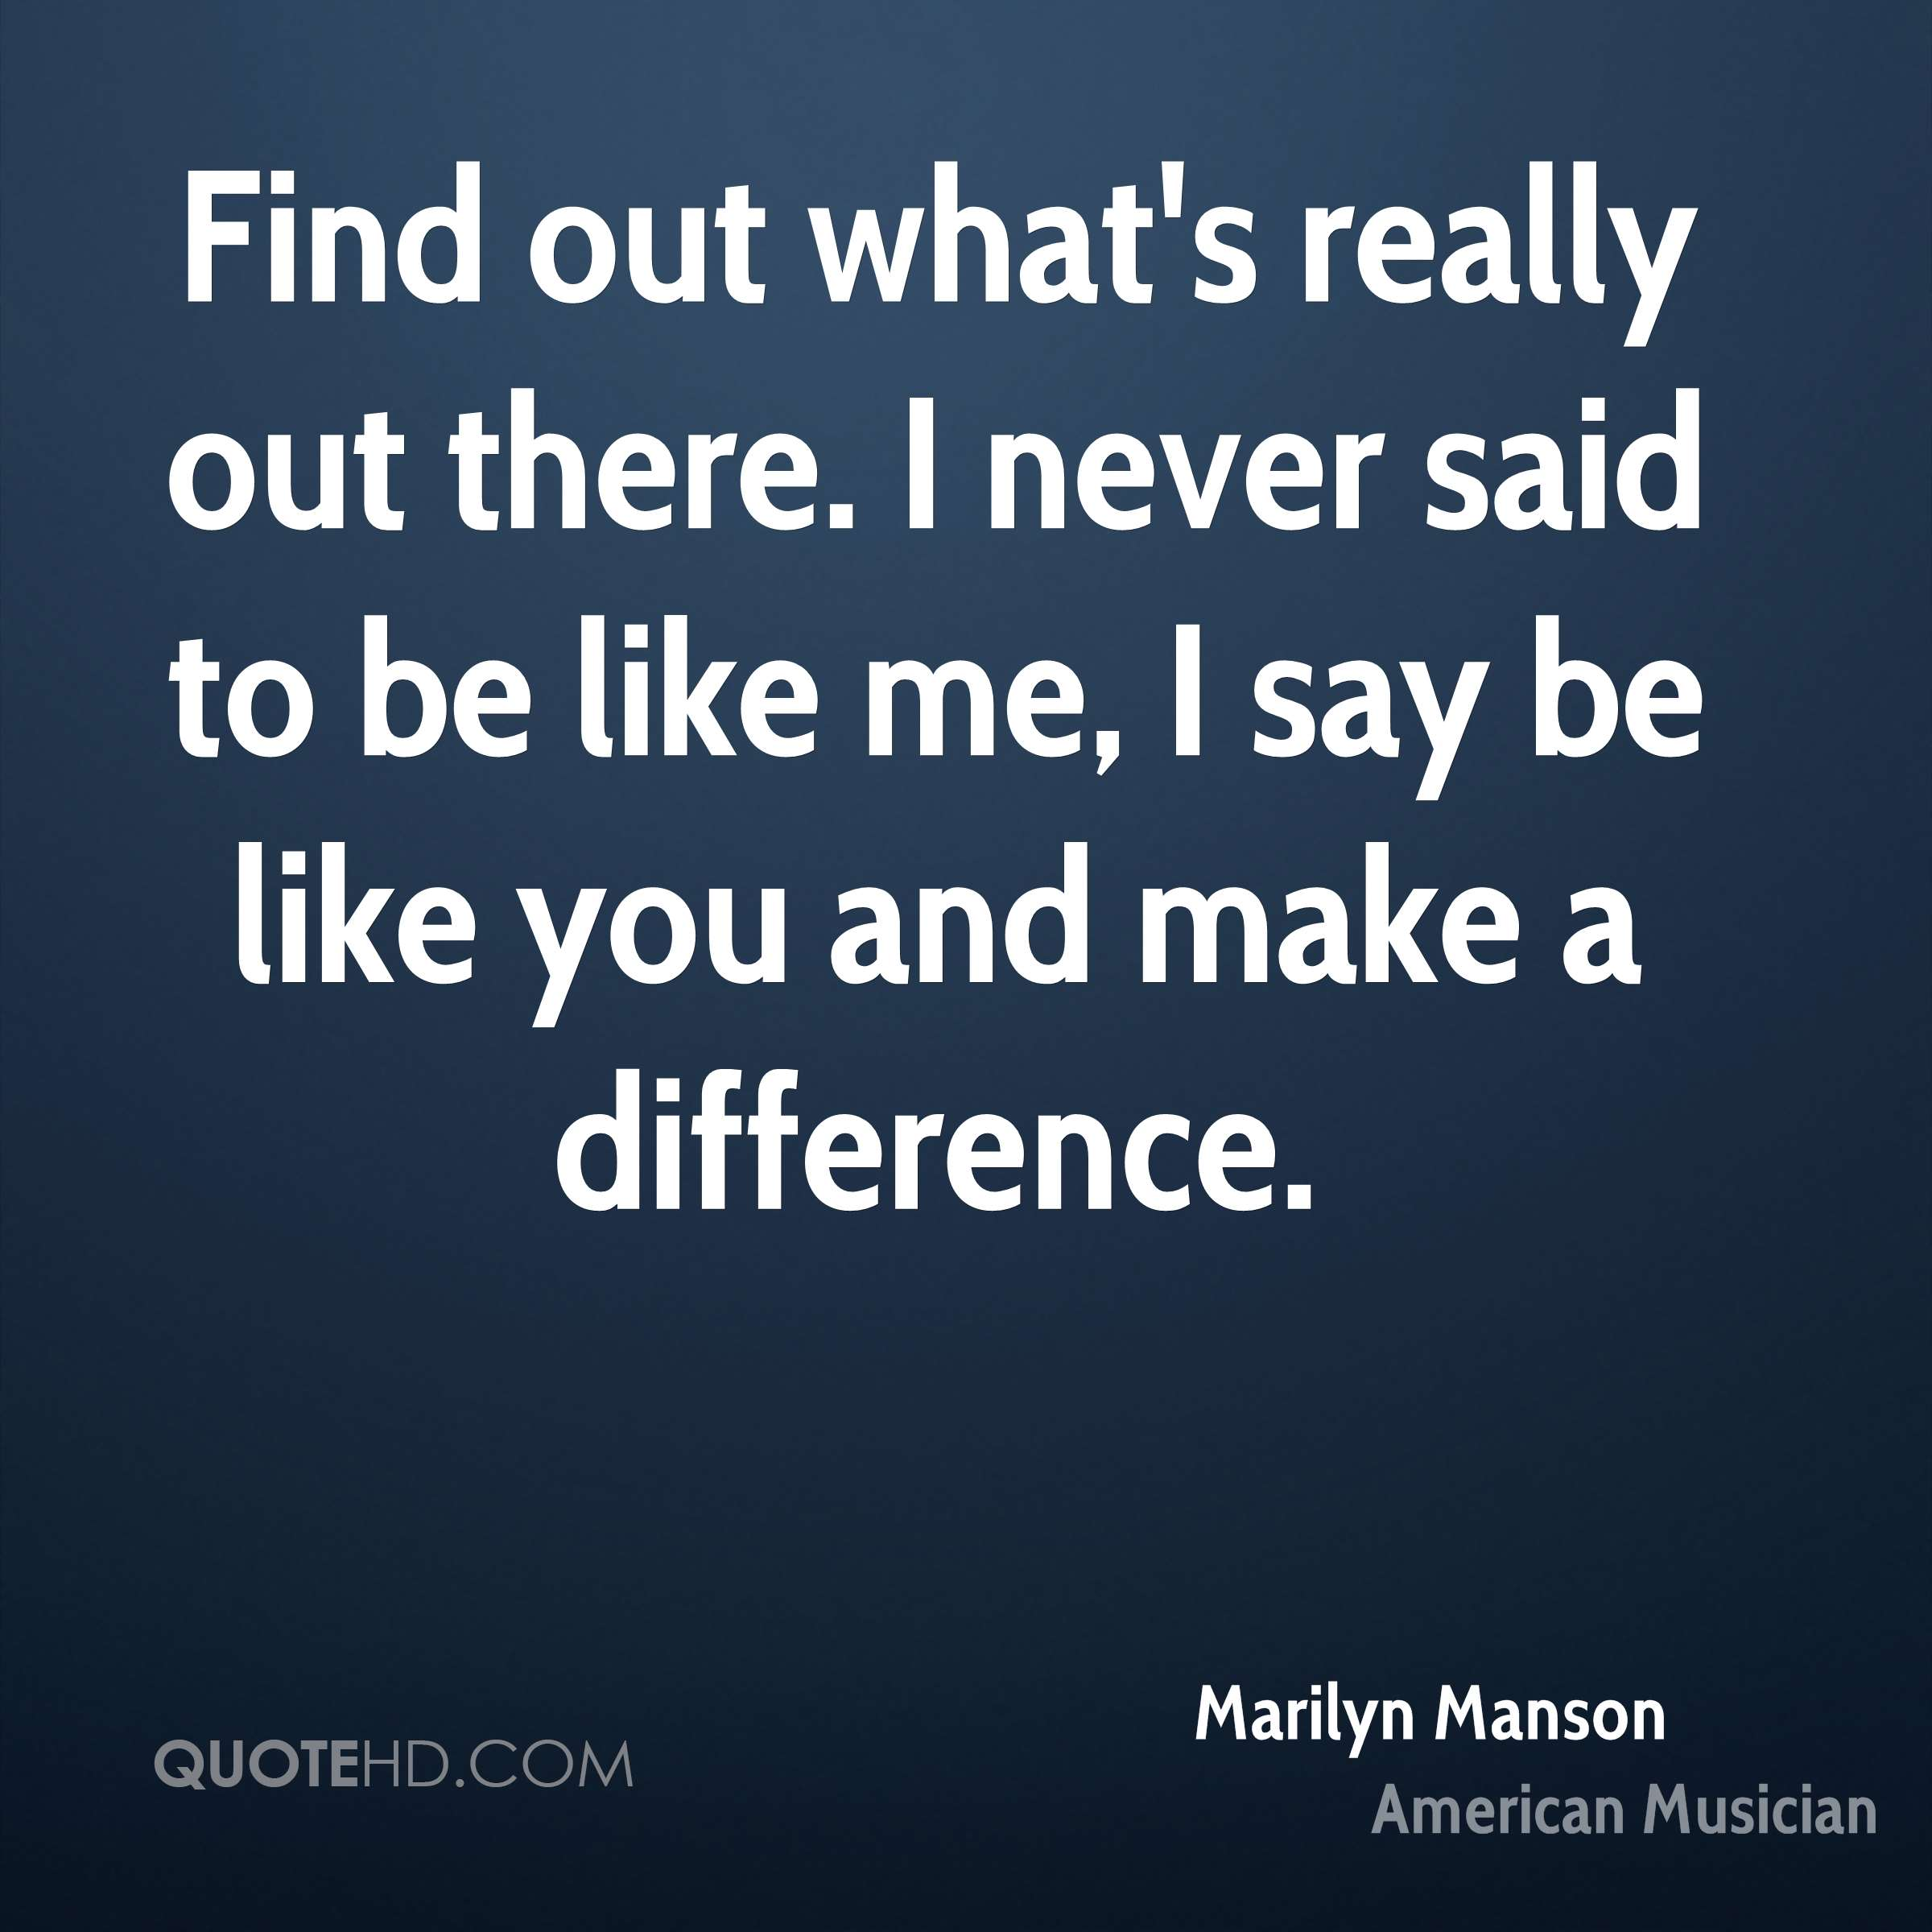 Find out what's really out there. I never said to be like me, I say be like you and make a difference.